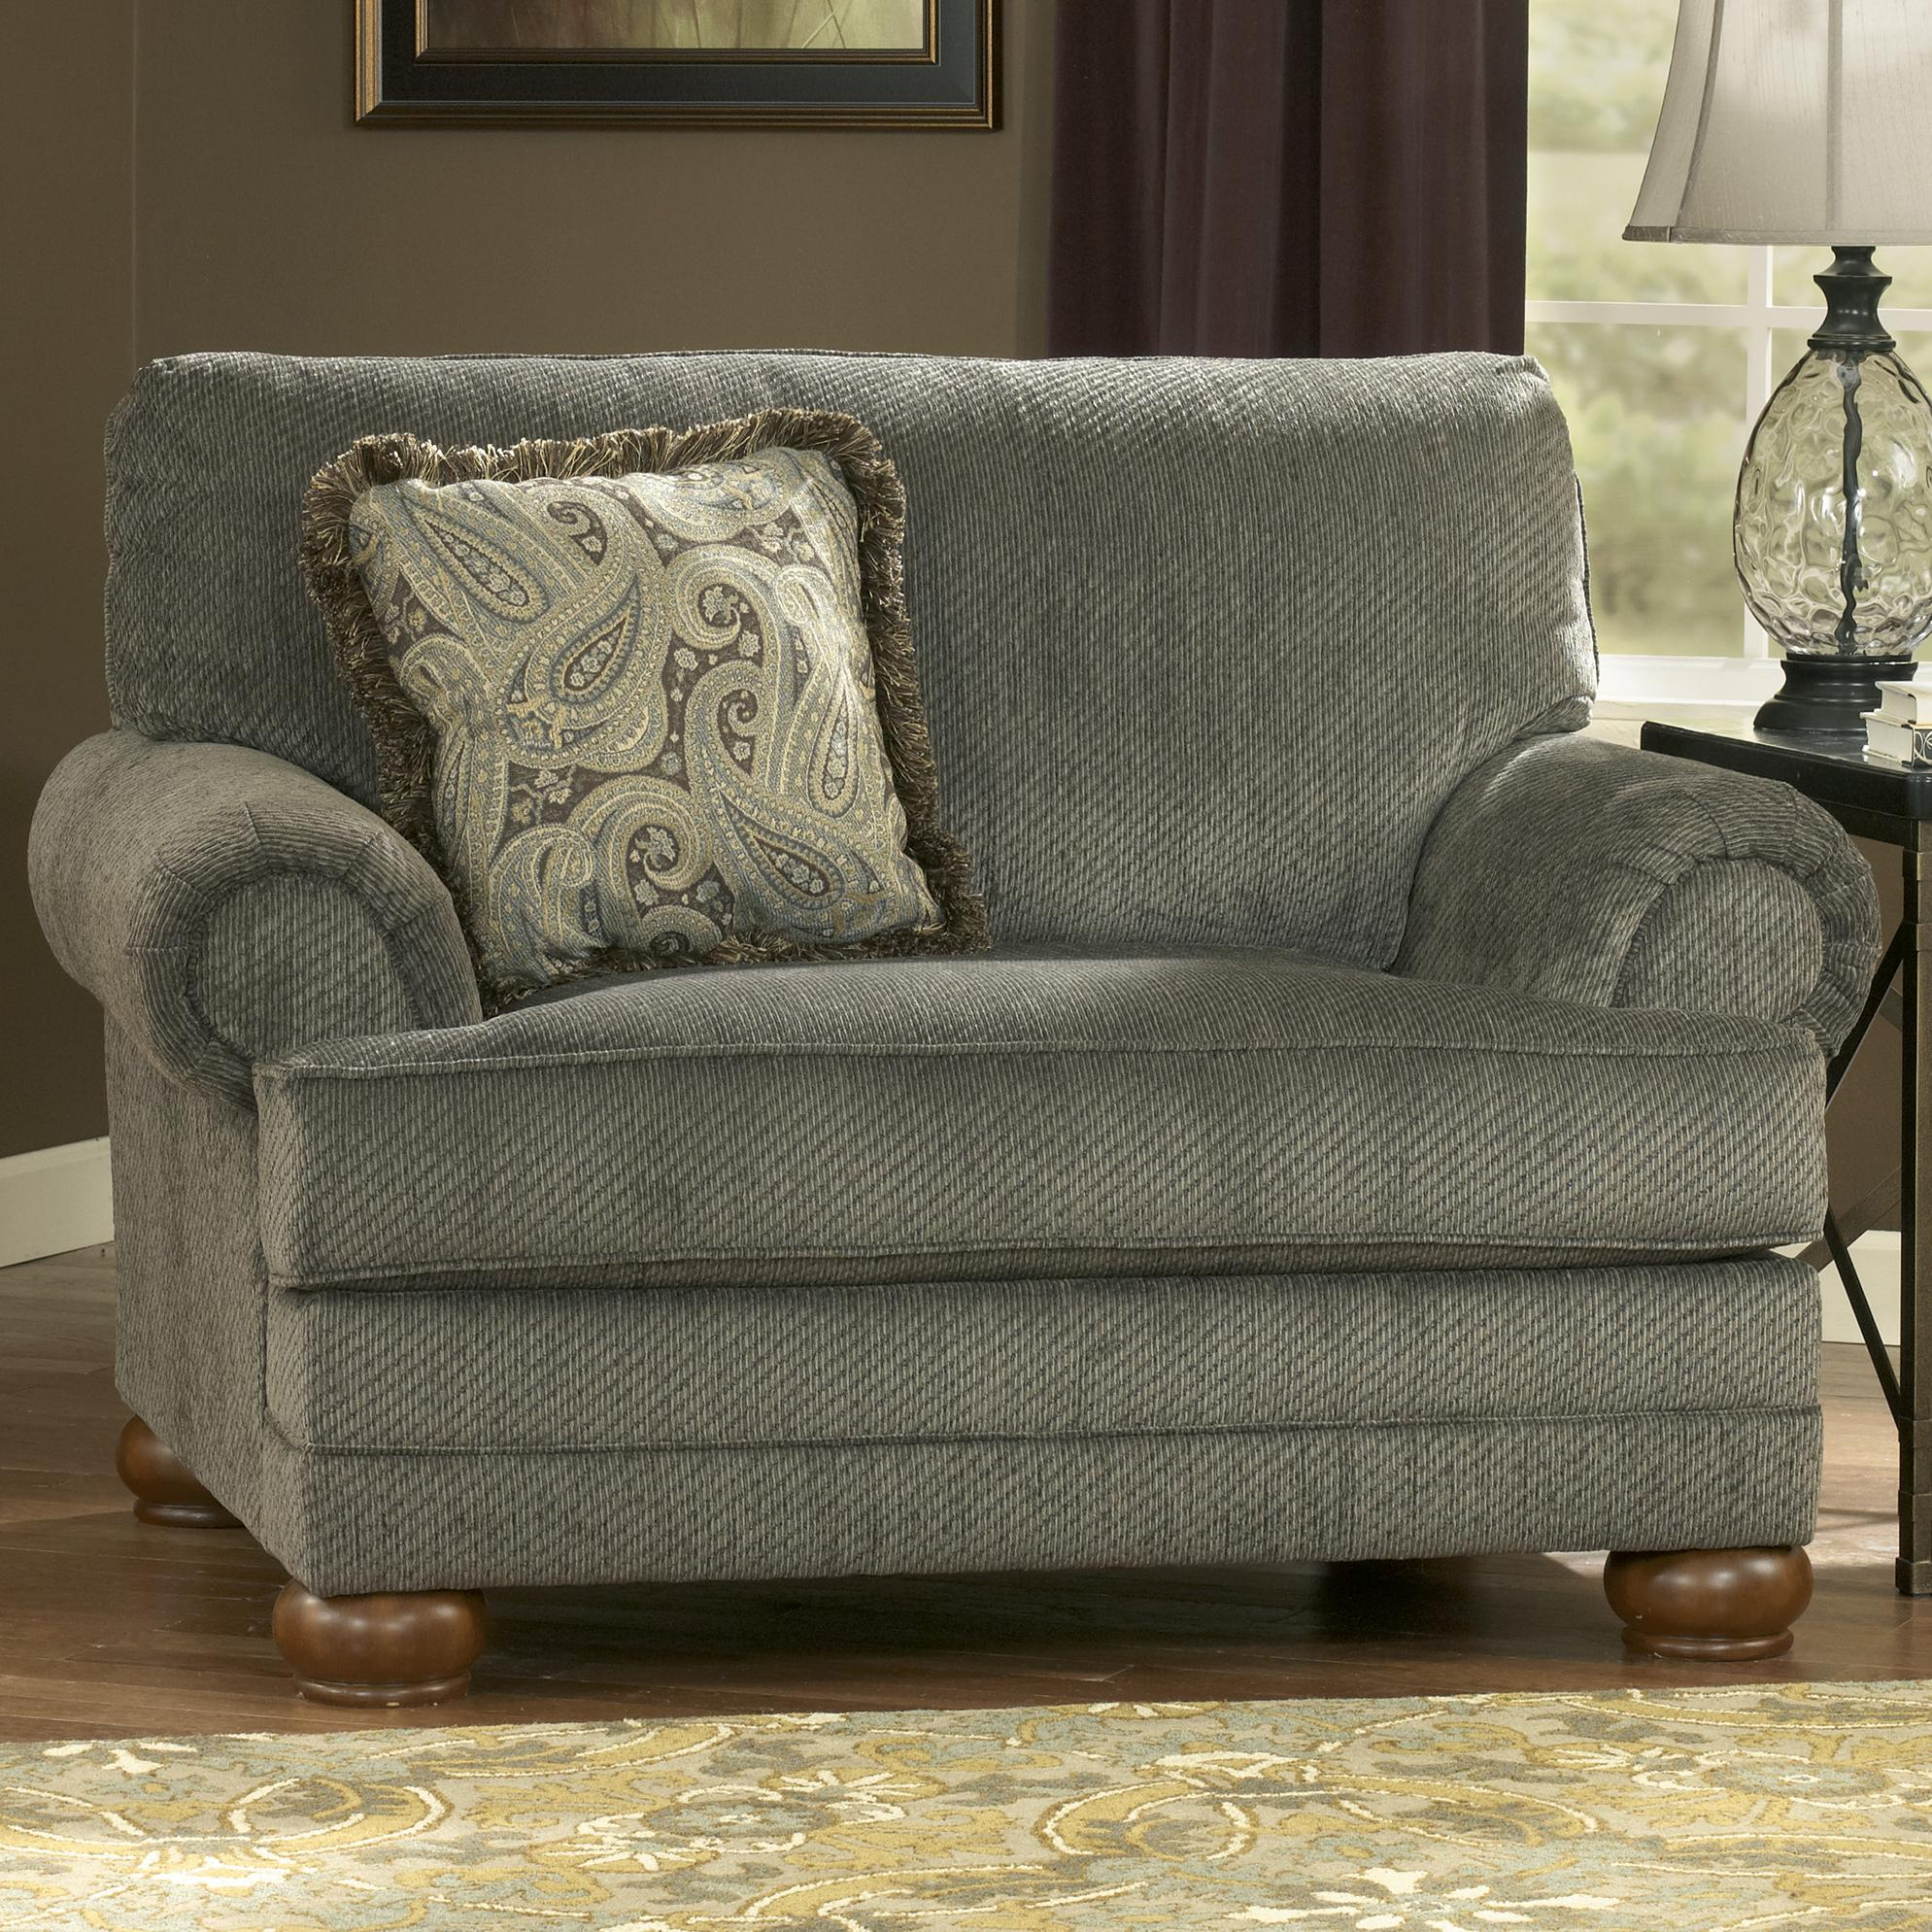 Signature Design by Ashley Parcal Estates - Basil Chair and a Half - Item Number: 7400523